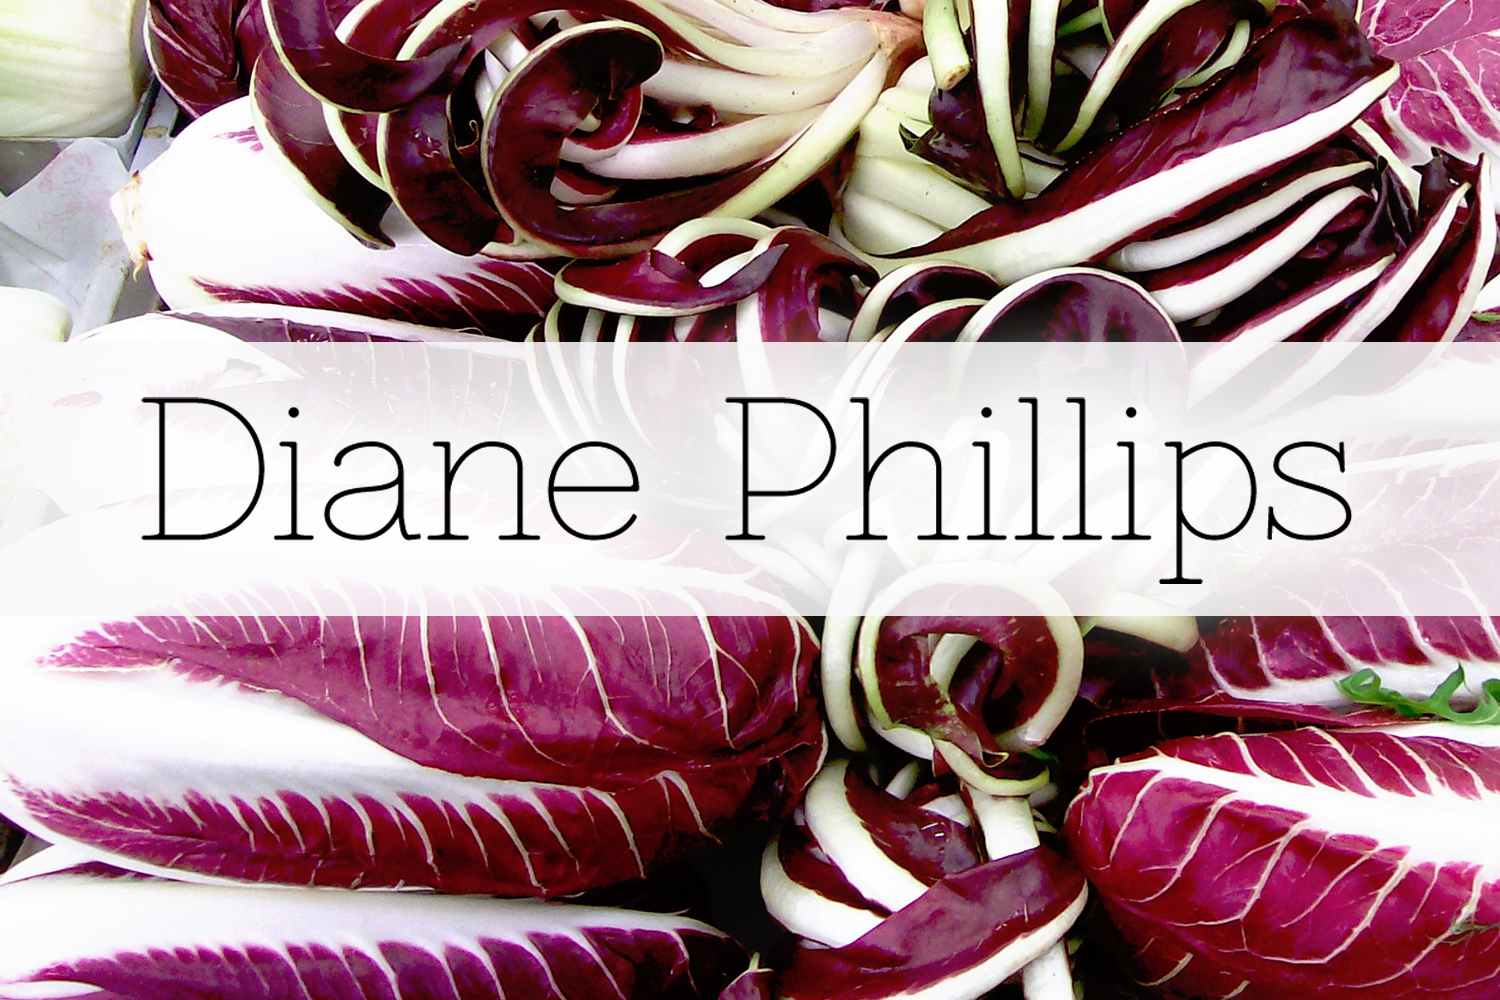 DIANE PHILLIPS